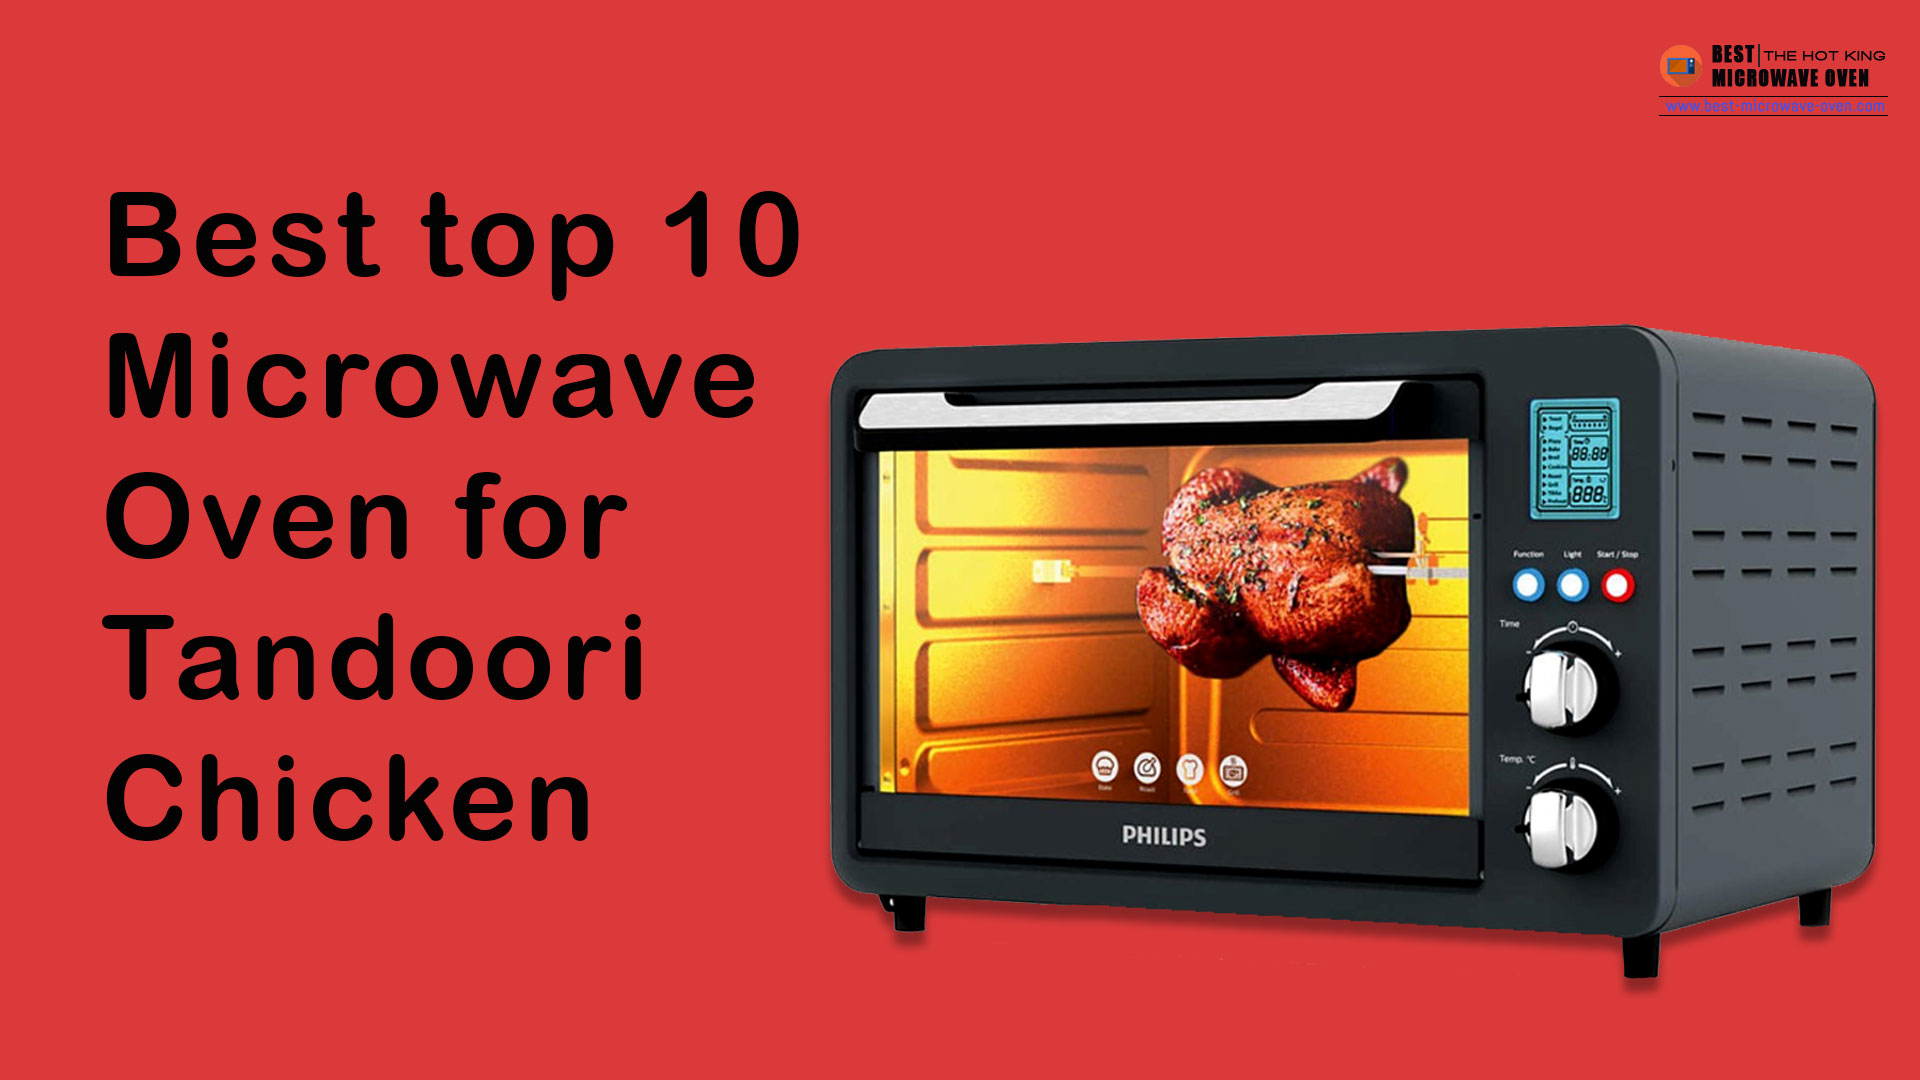 Best Top 10 Microwave Oven For Tandoori Chicken Analysis